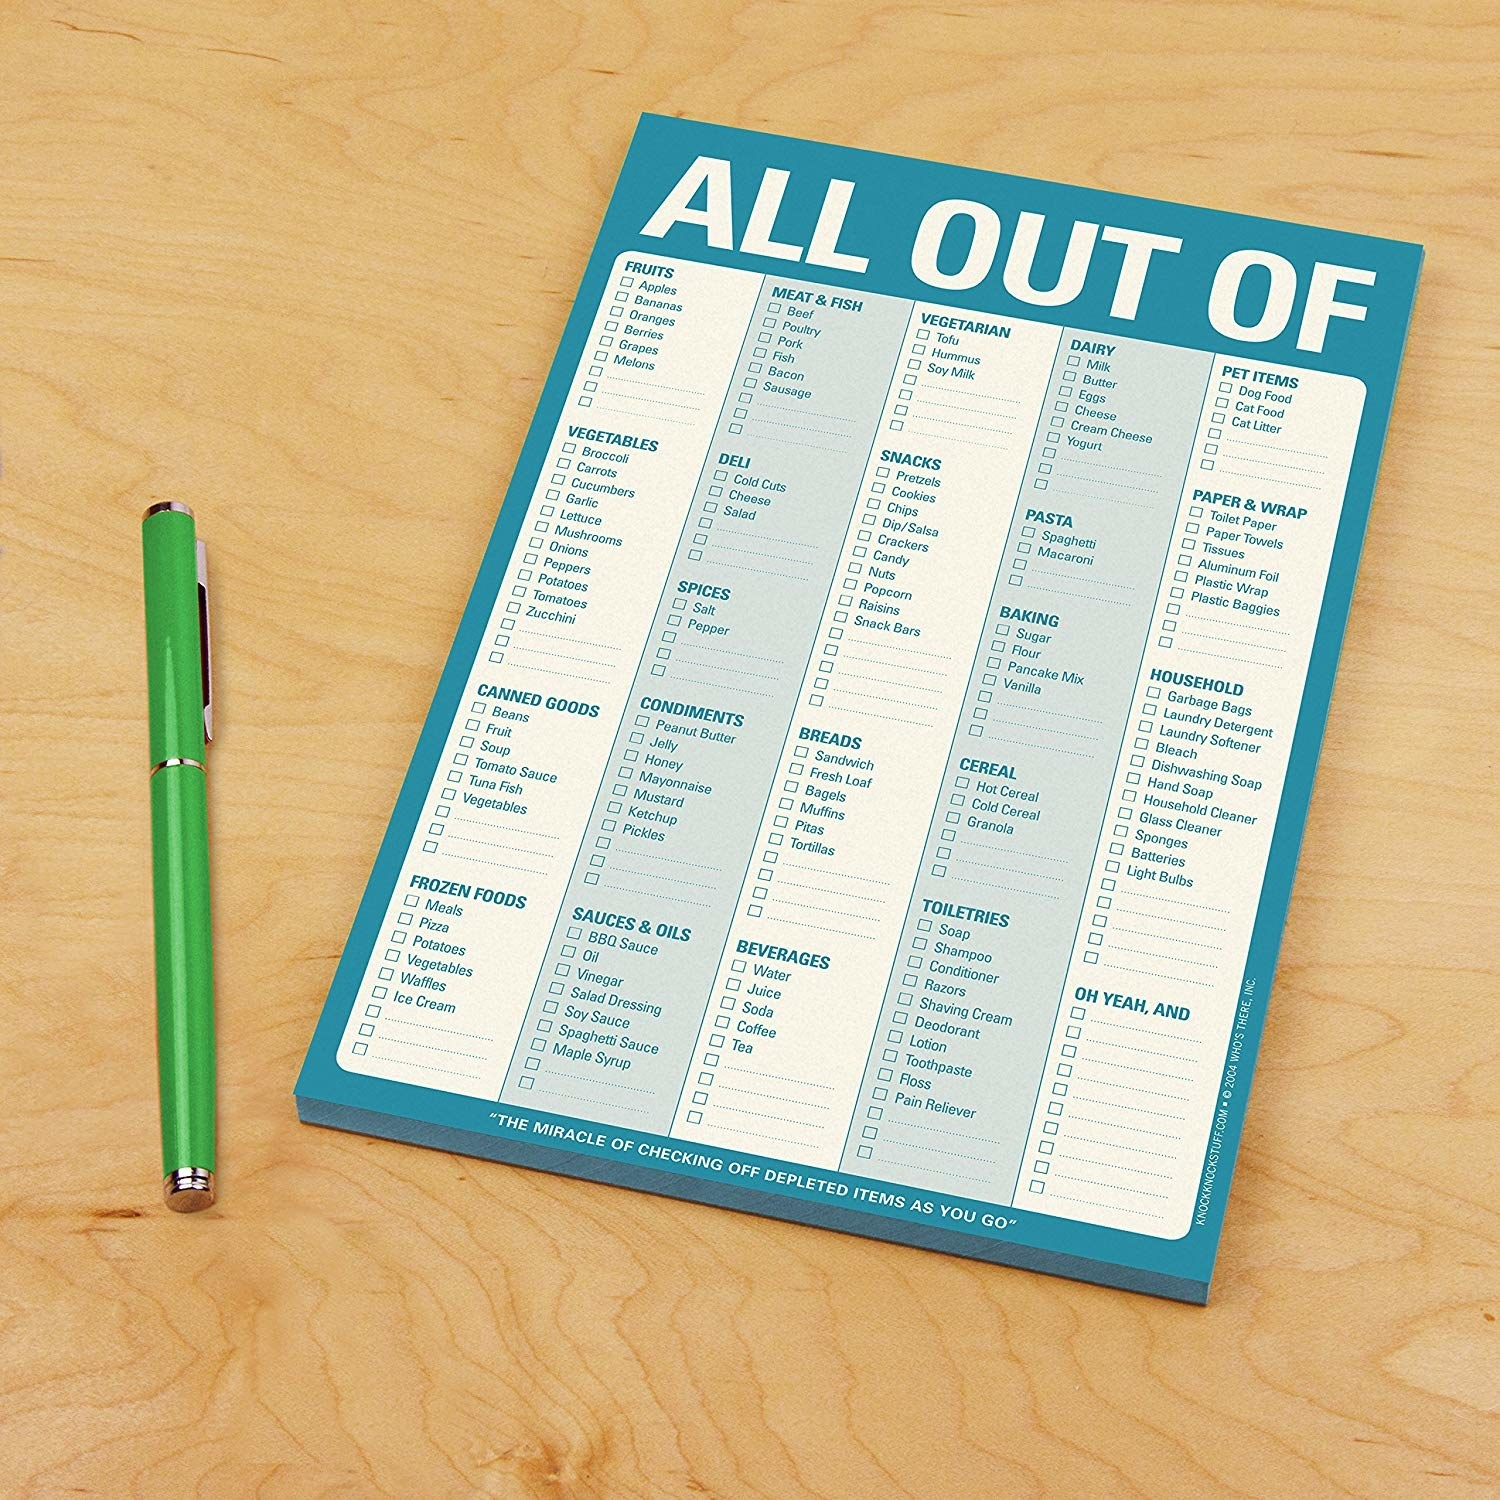 The blue notepad, with sections for categories of food, suggested items, and blank lines so you can fill in your own